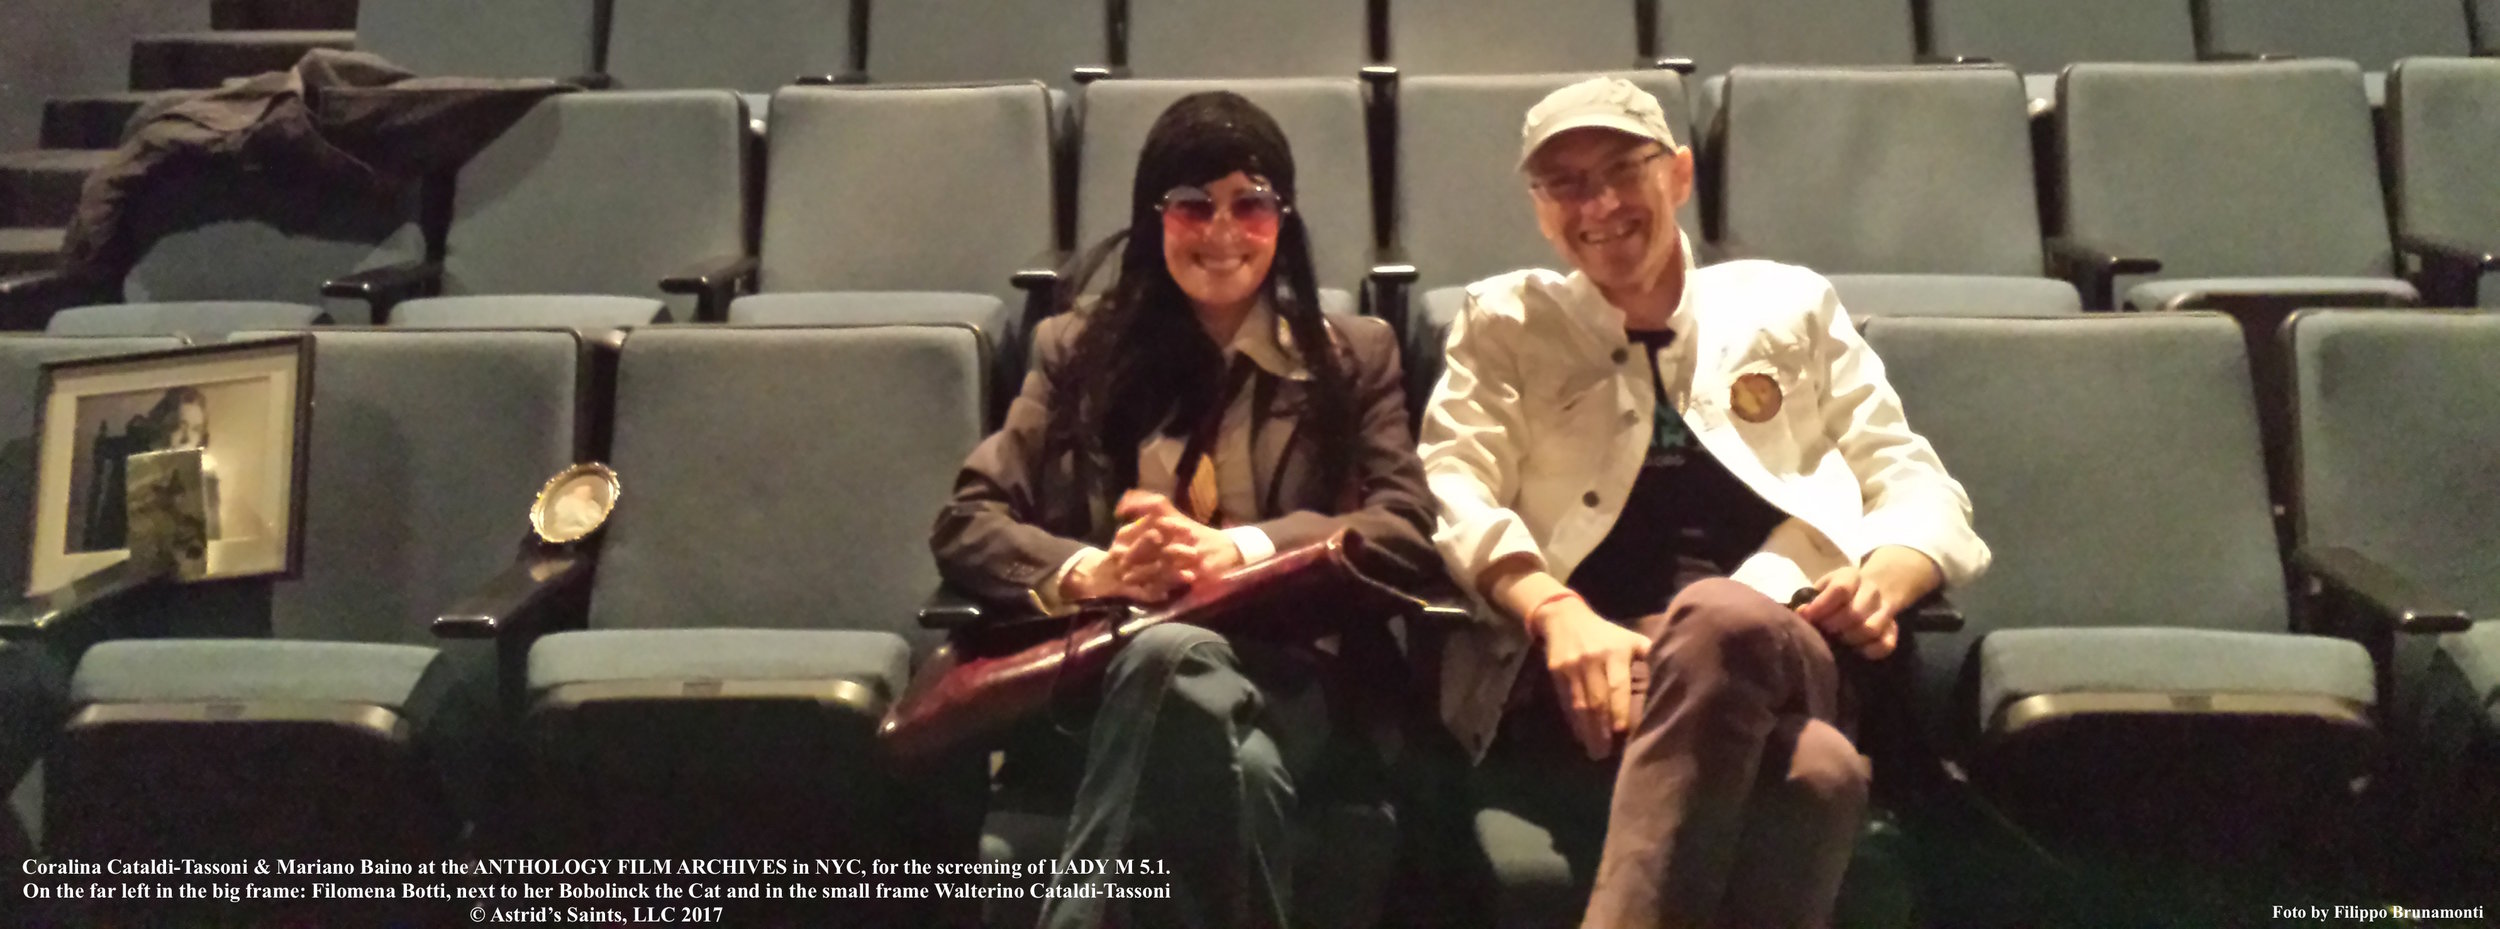 Coralina Cataldi-Tassoni & Mariano Baino at the LADY M 5.1 screening at The Anthology Film Archives May 6th 2017 4.jpg